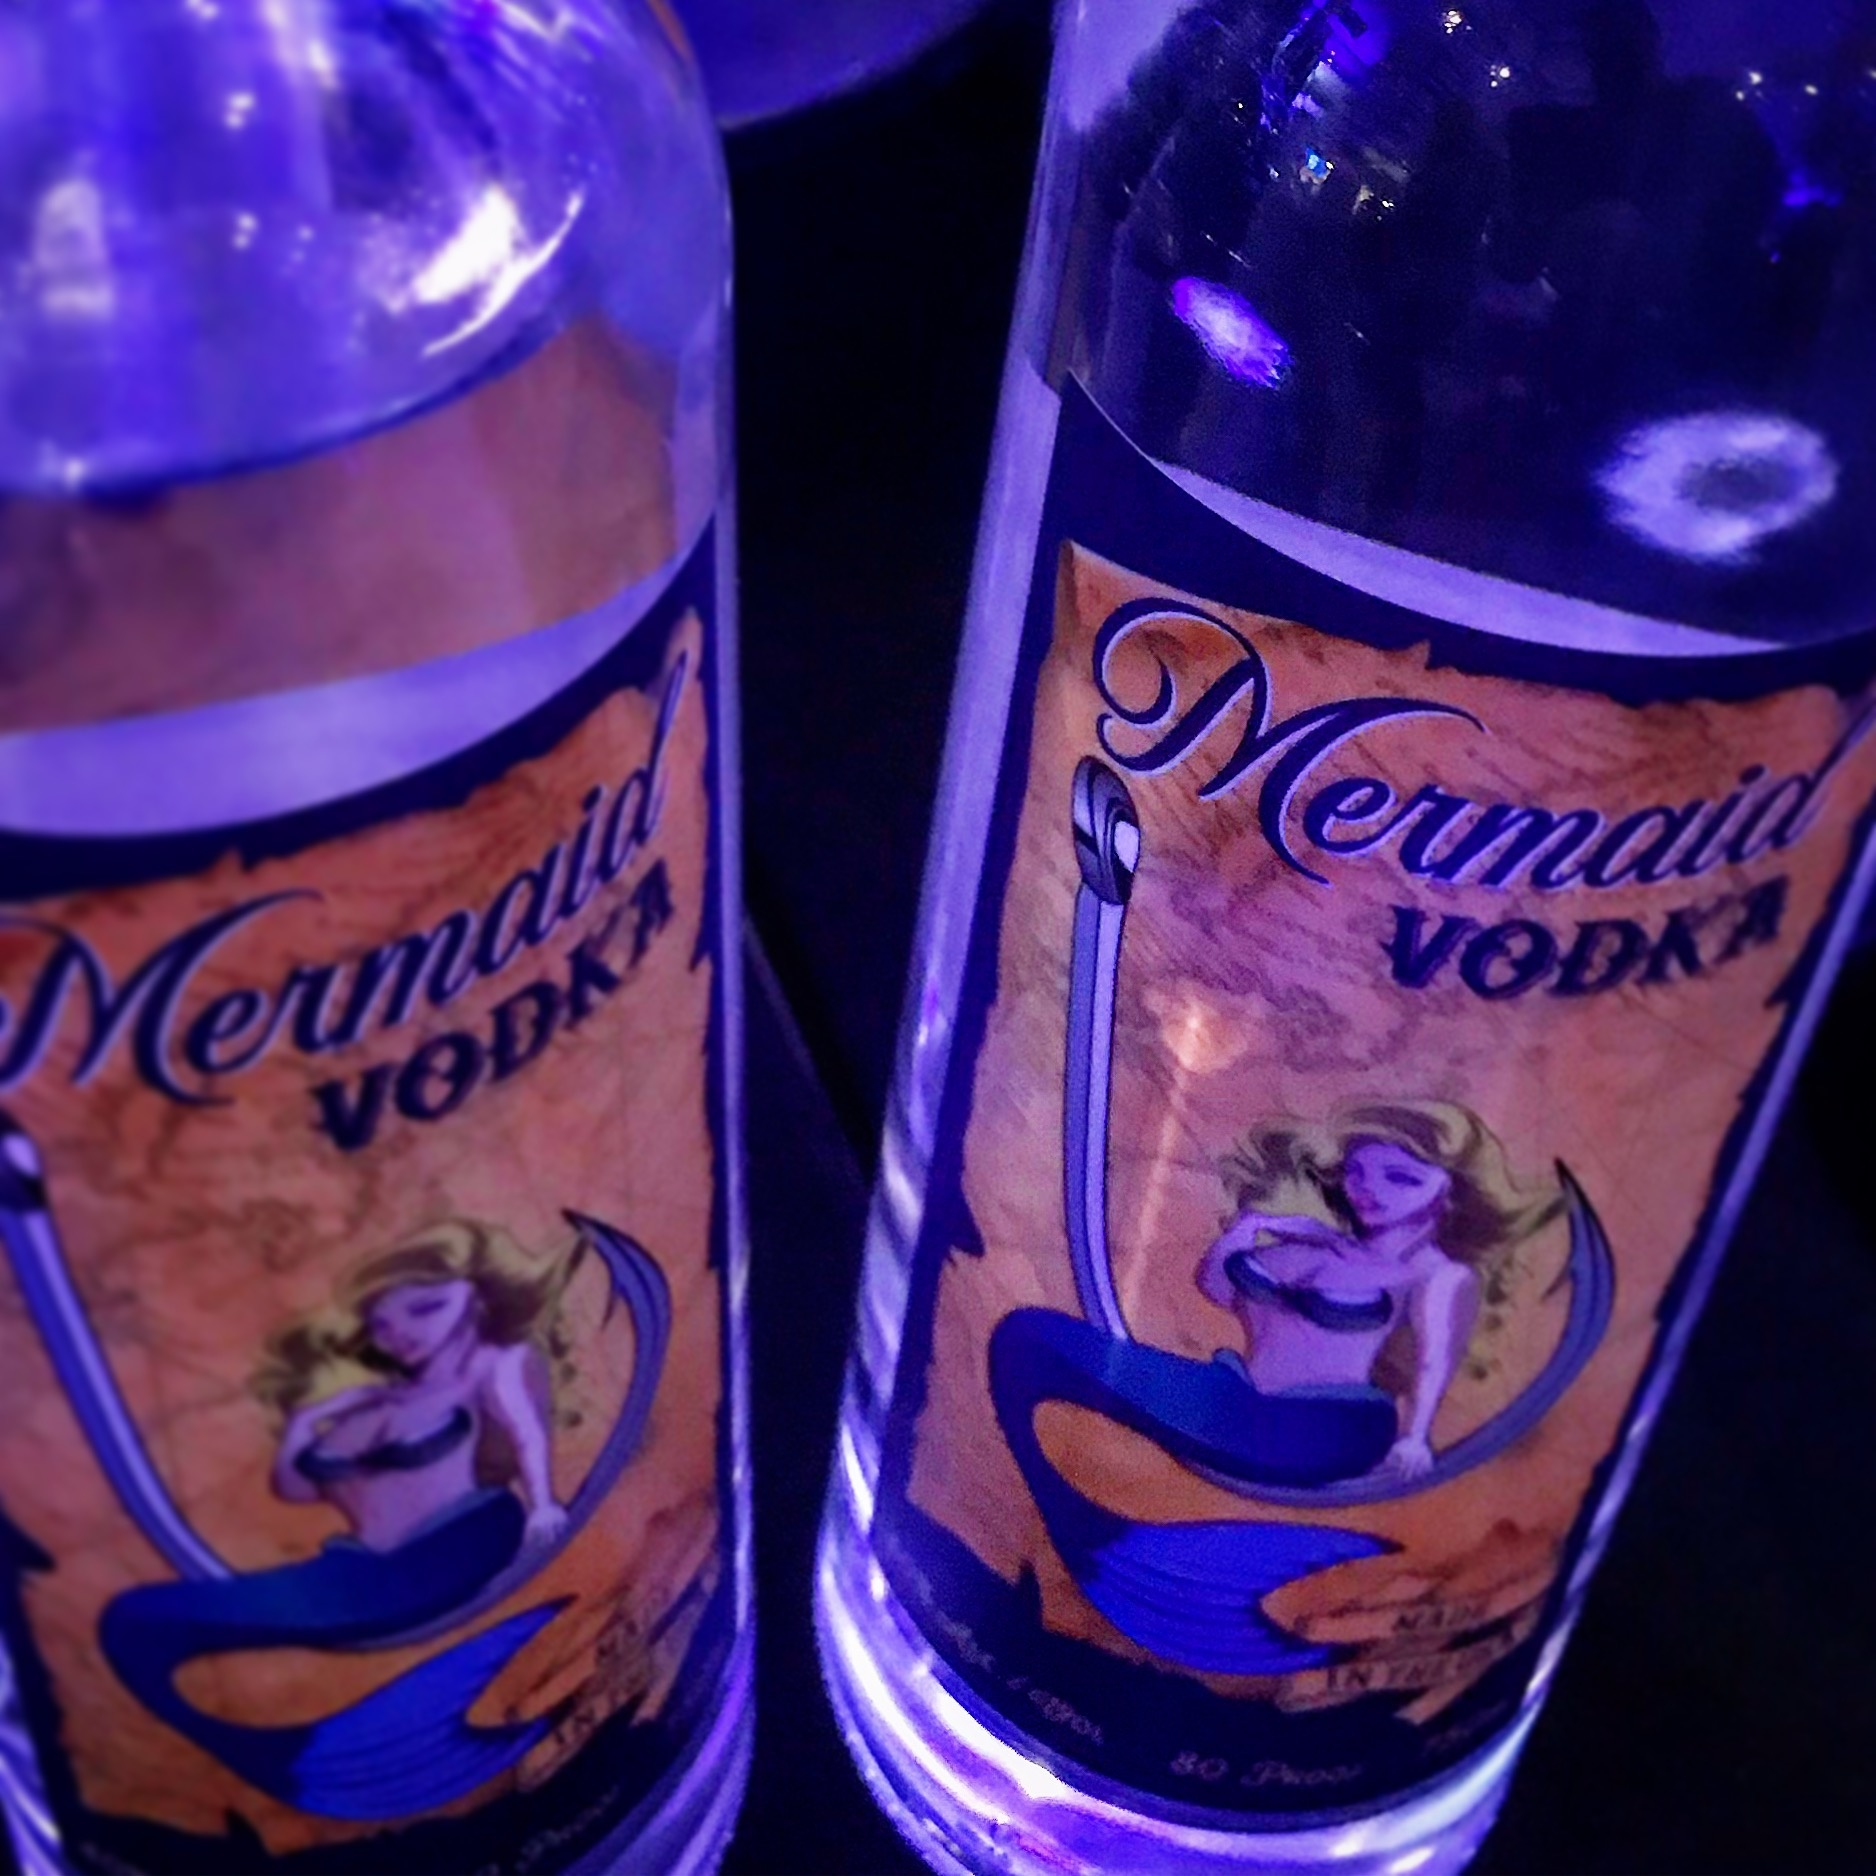 Mermaid Vodka Bottles